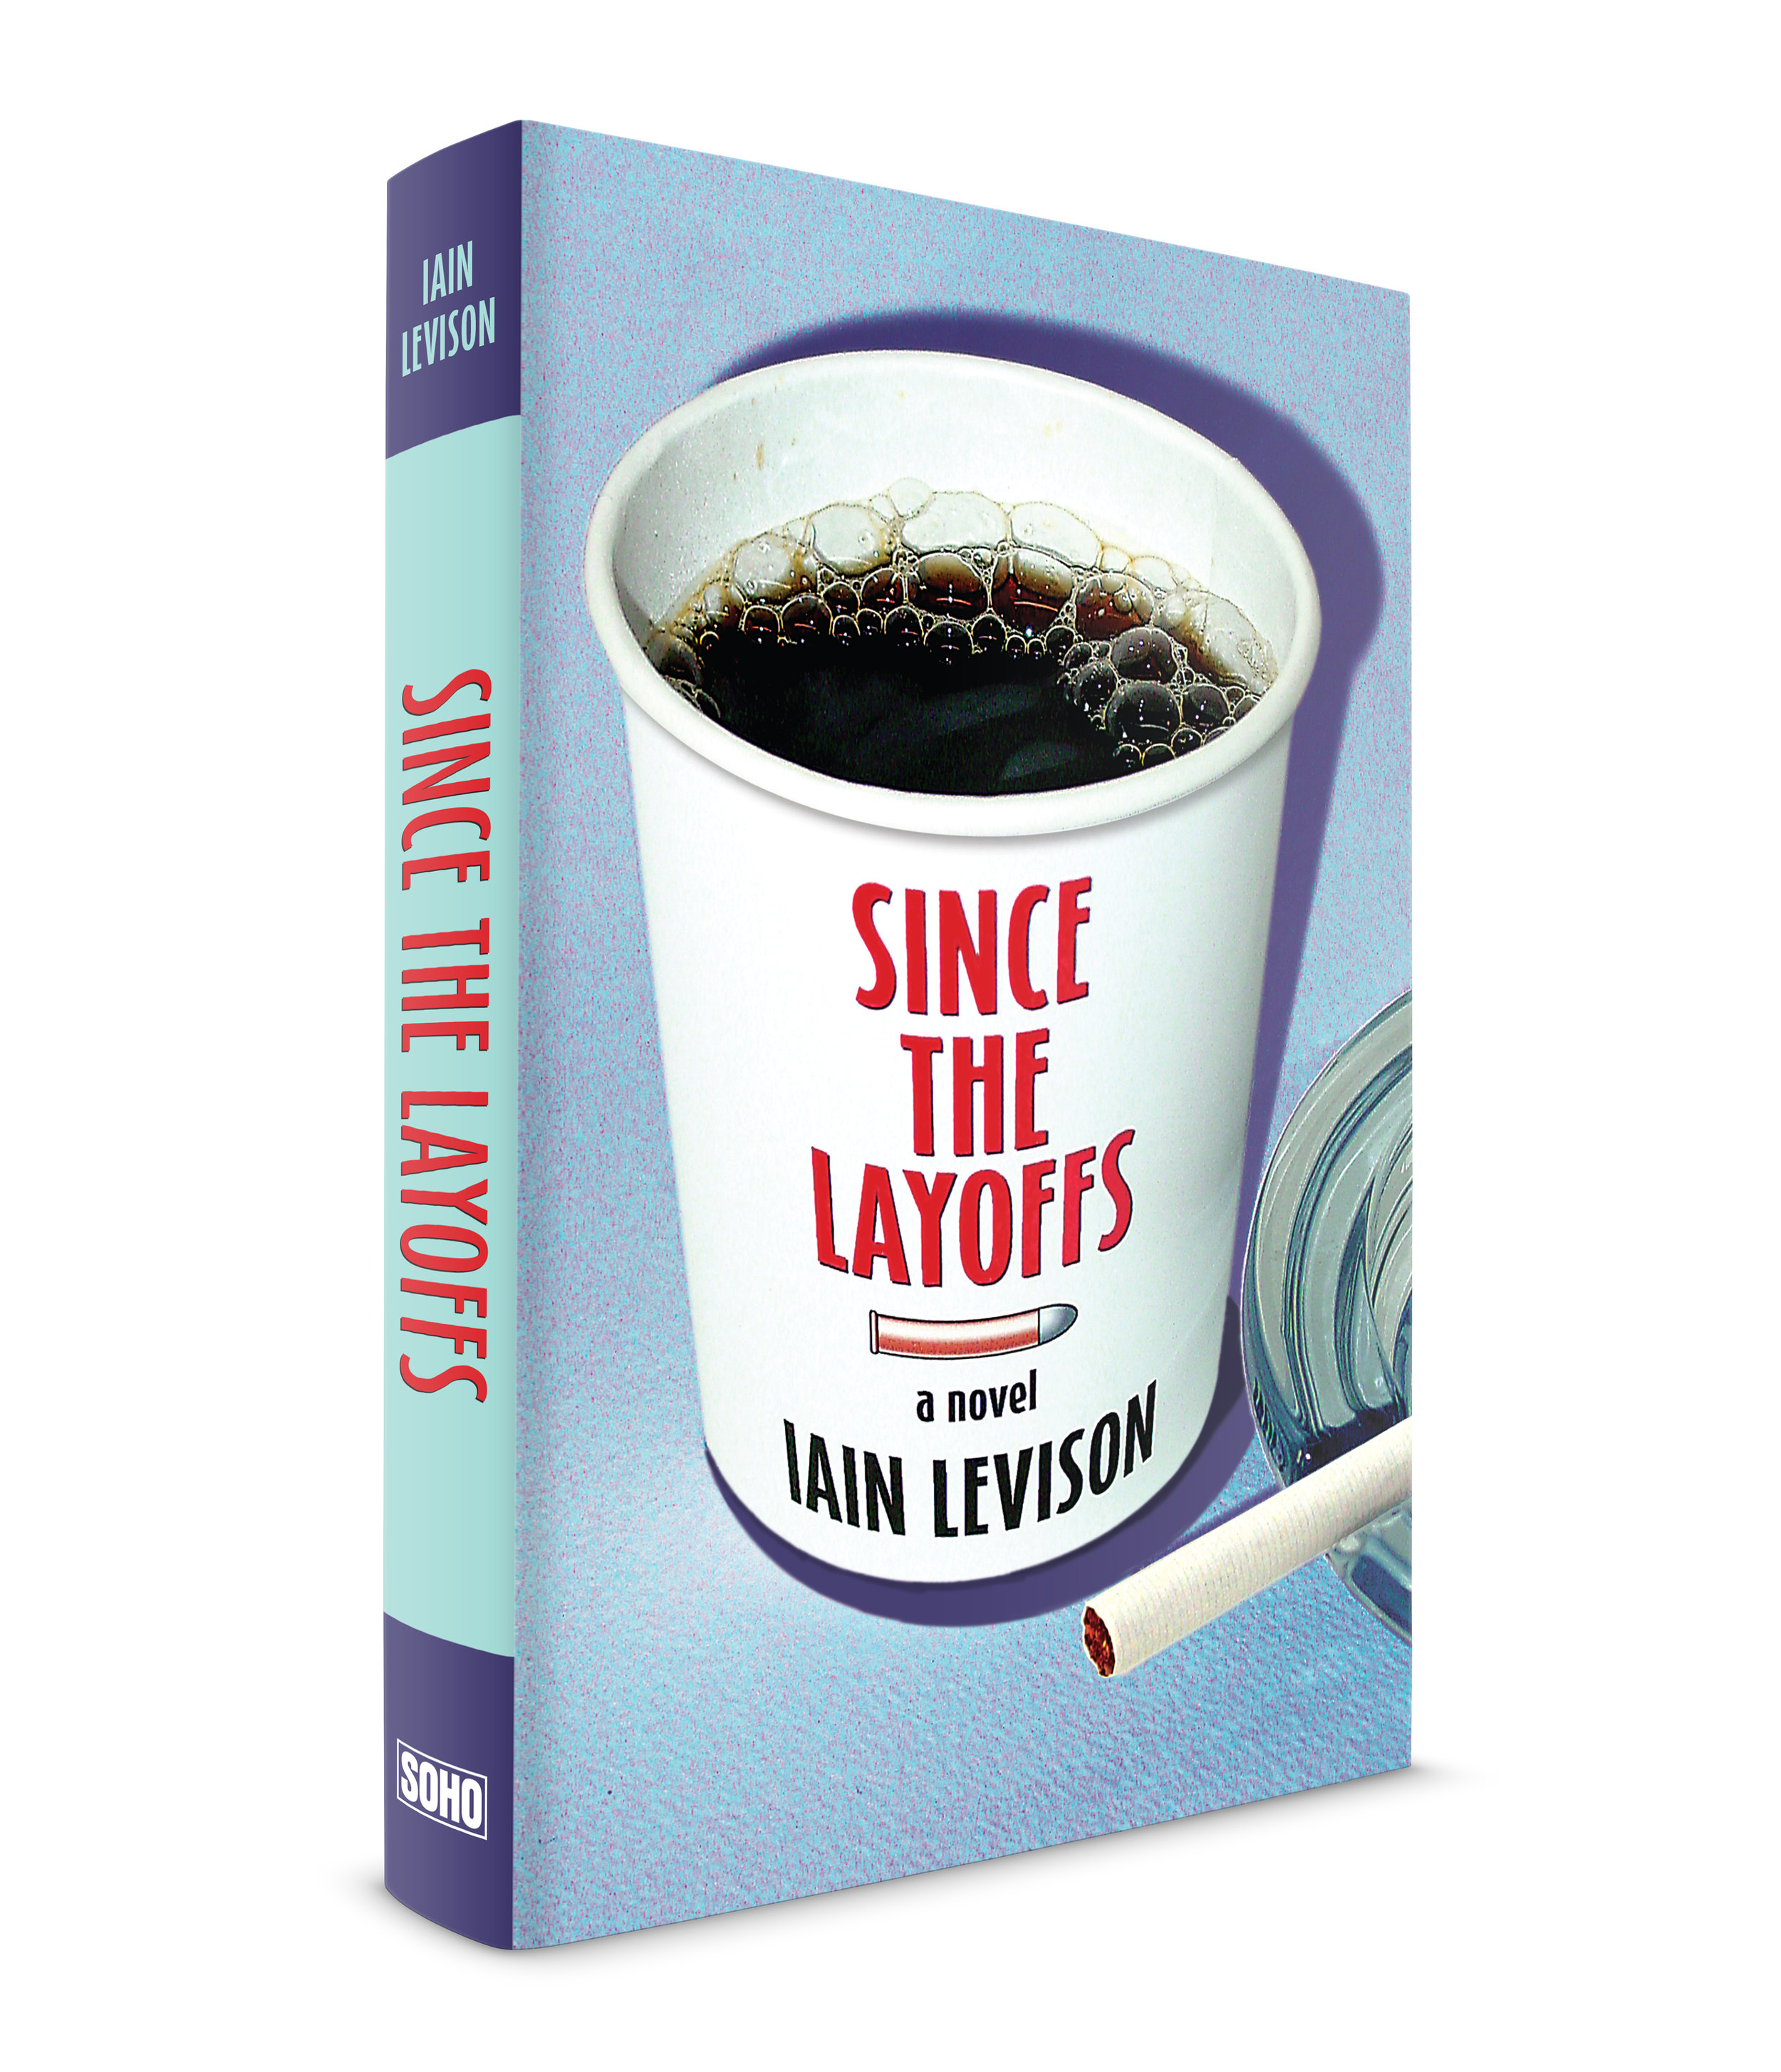 Since the Layoffs, by Iain Levison, published by Soho Press. Jake, the protagonist in this black comedy works in a factory that makes tractor parts in the midwest. Everyone in the town works there. When the factory shuts down, they all become unemployed. Jake is doing a little work at a convenience store when he is hired to committ a particularly gruesome crime. He does it and does it well and gets paid for it. Then he's hired to committ another crime. Now he's the only person in the town who is gainfully employed. I made the coffee cup label and photographed it, then did the imaging. People in the town go to the Gas 'n' Go for coffee while they try to figure out what's next for them.